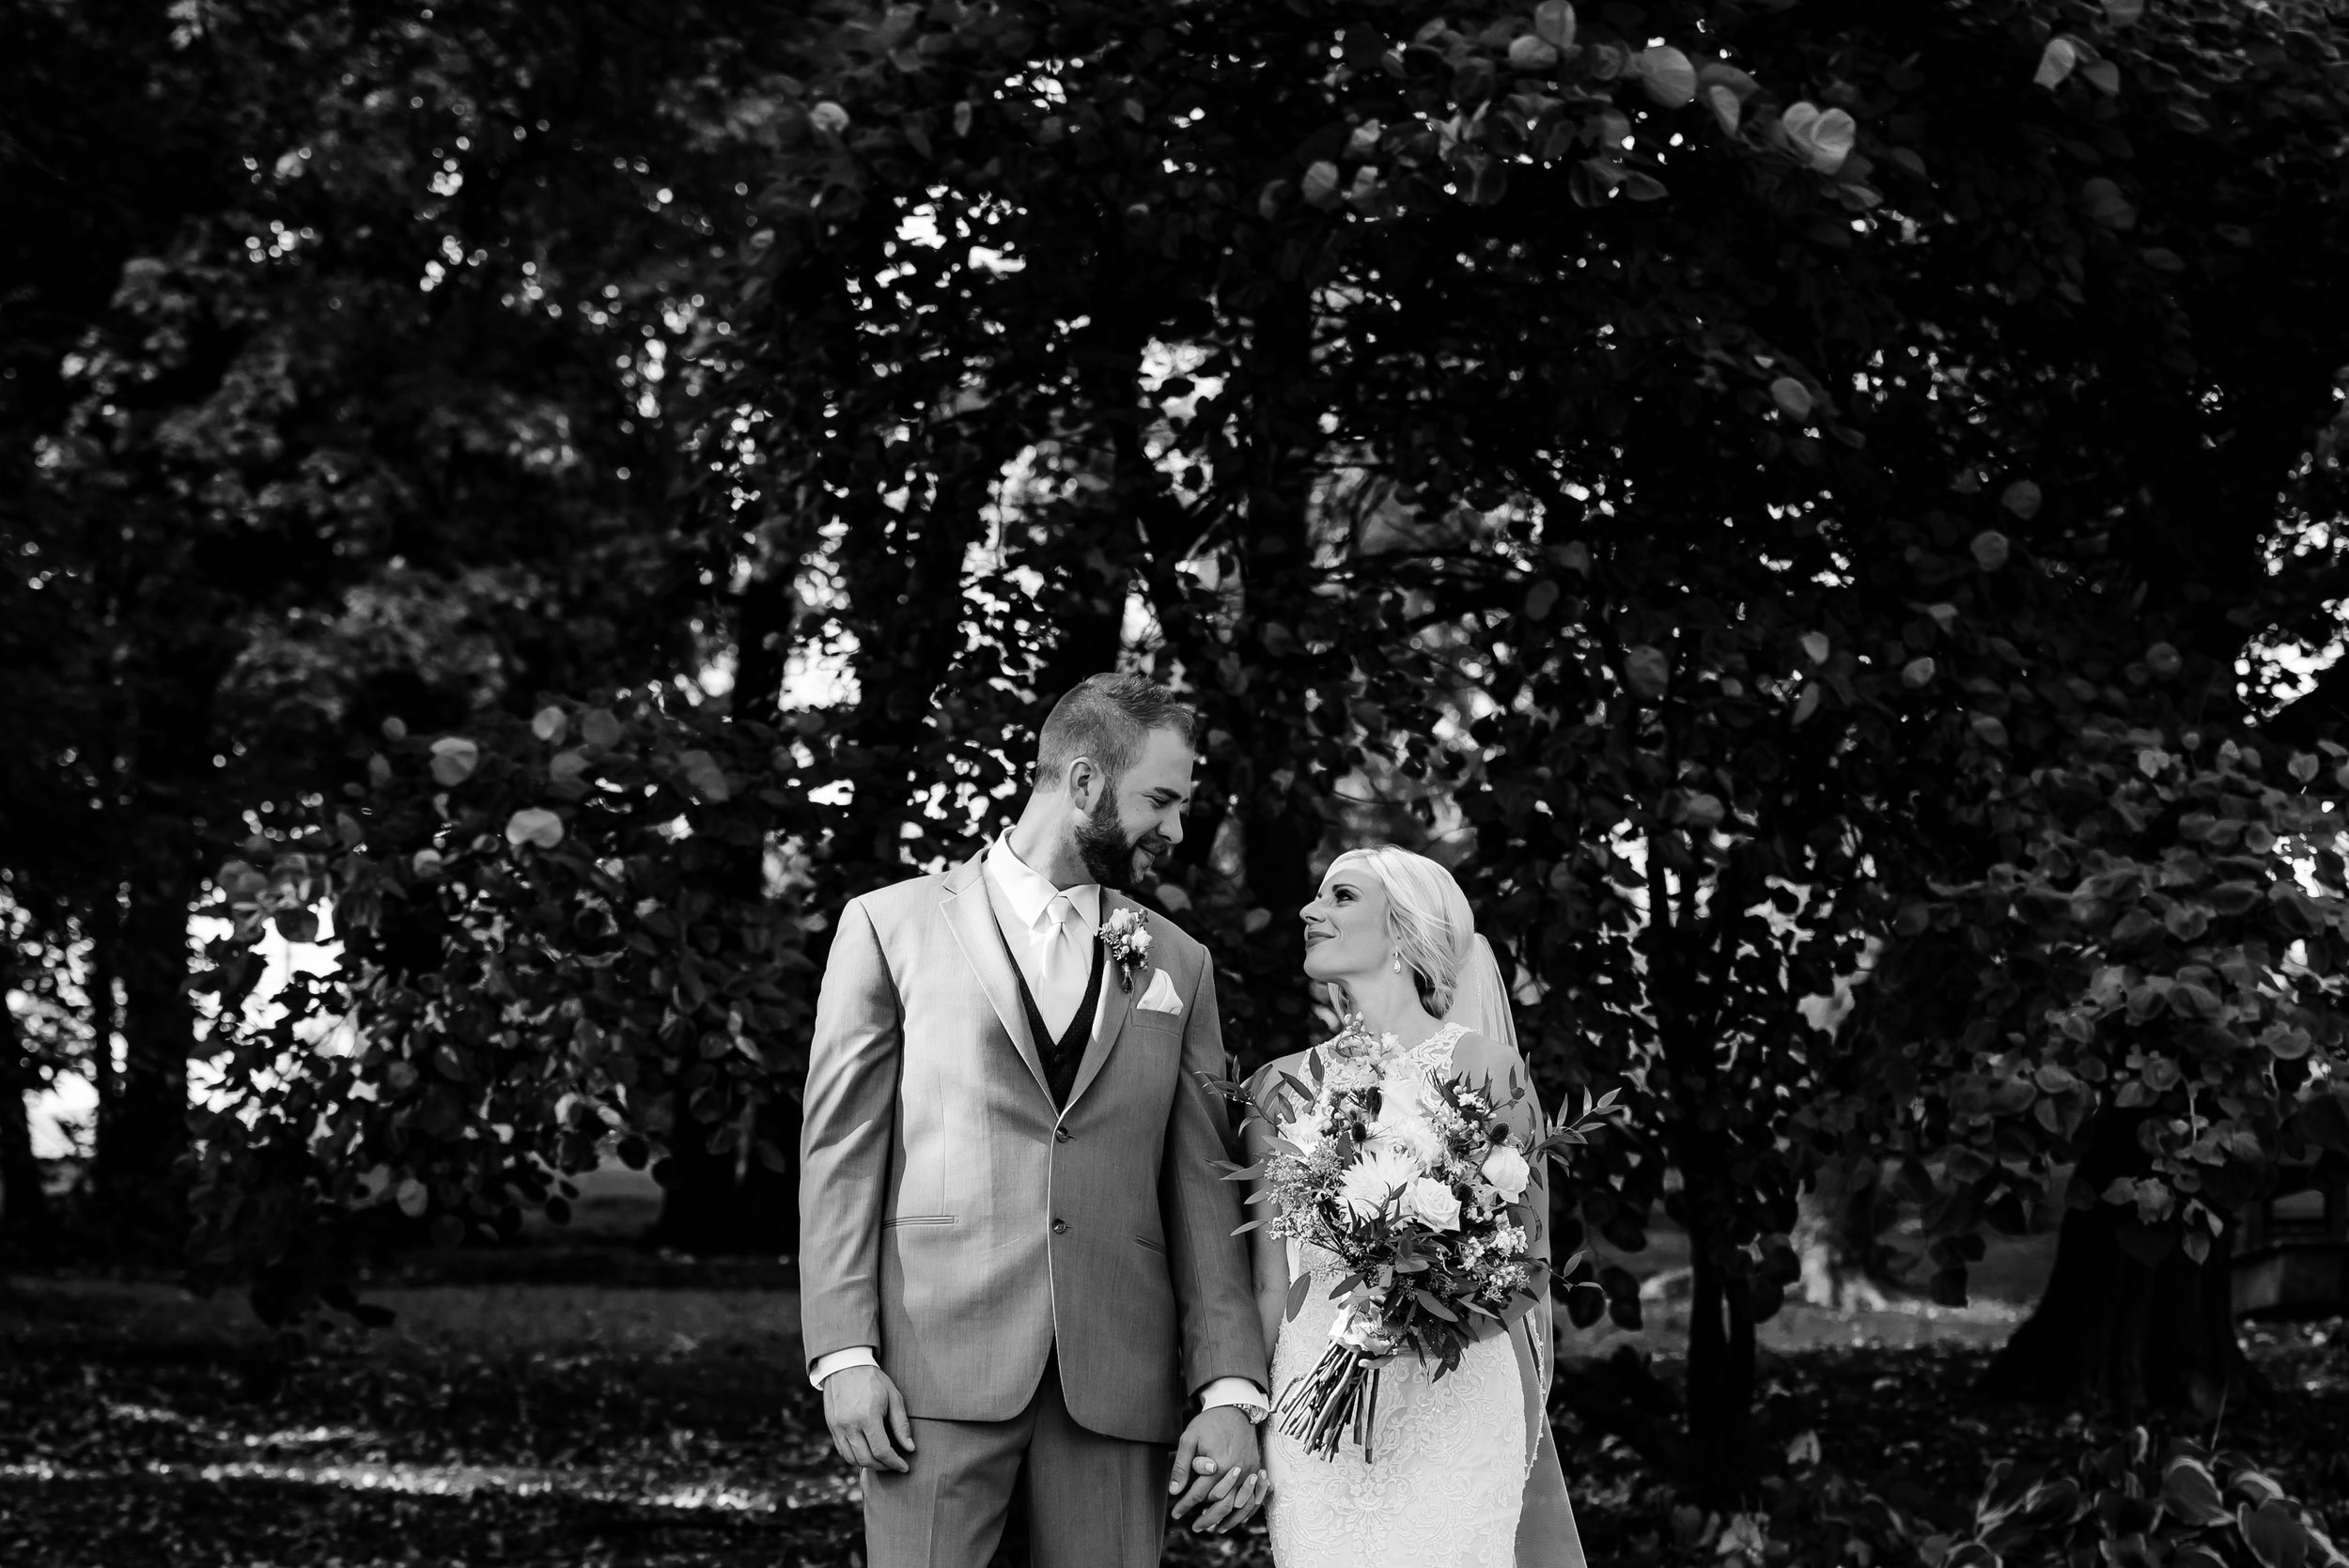 Mikenna and Matt - The Woods Chapel Wedding BW-358.jpg